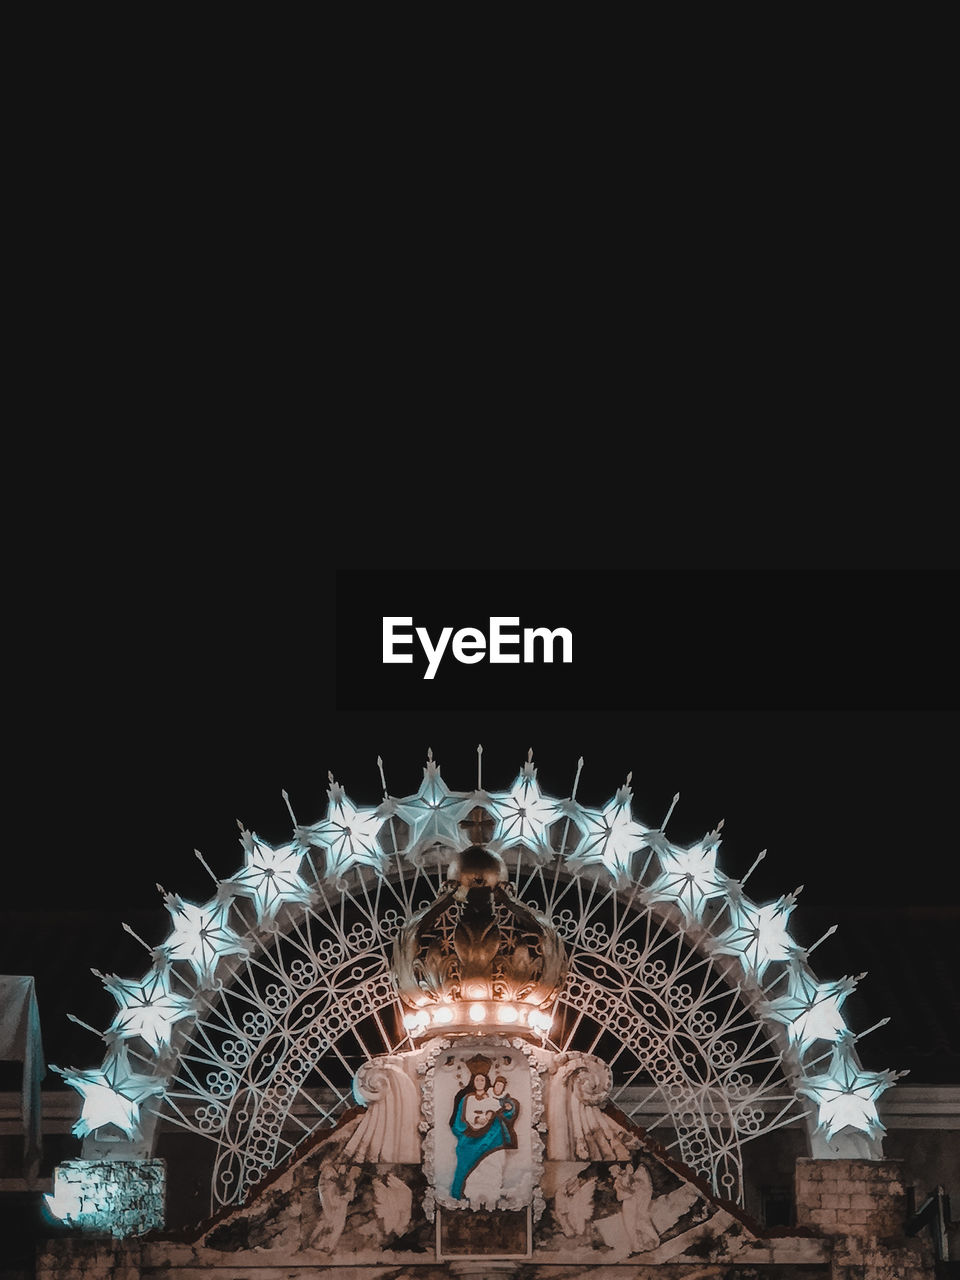 night, illuminated, copy space, amusement park, arts culture and entertainment, amusement park ride, architecture, low angle view, sky, built structure, lighting equipment, glowing, motion, ferris wheel, no people, blurred motion, travel destinations, nature, spinning, clear sky, light